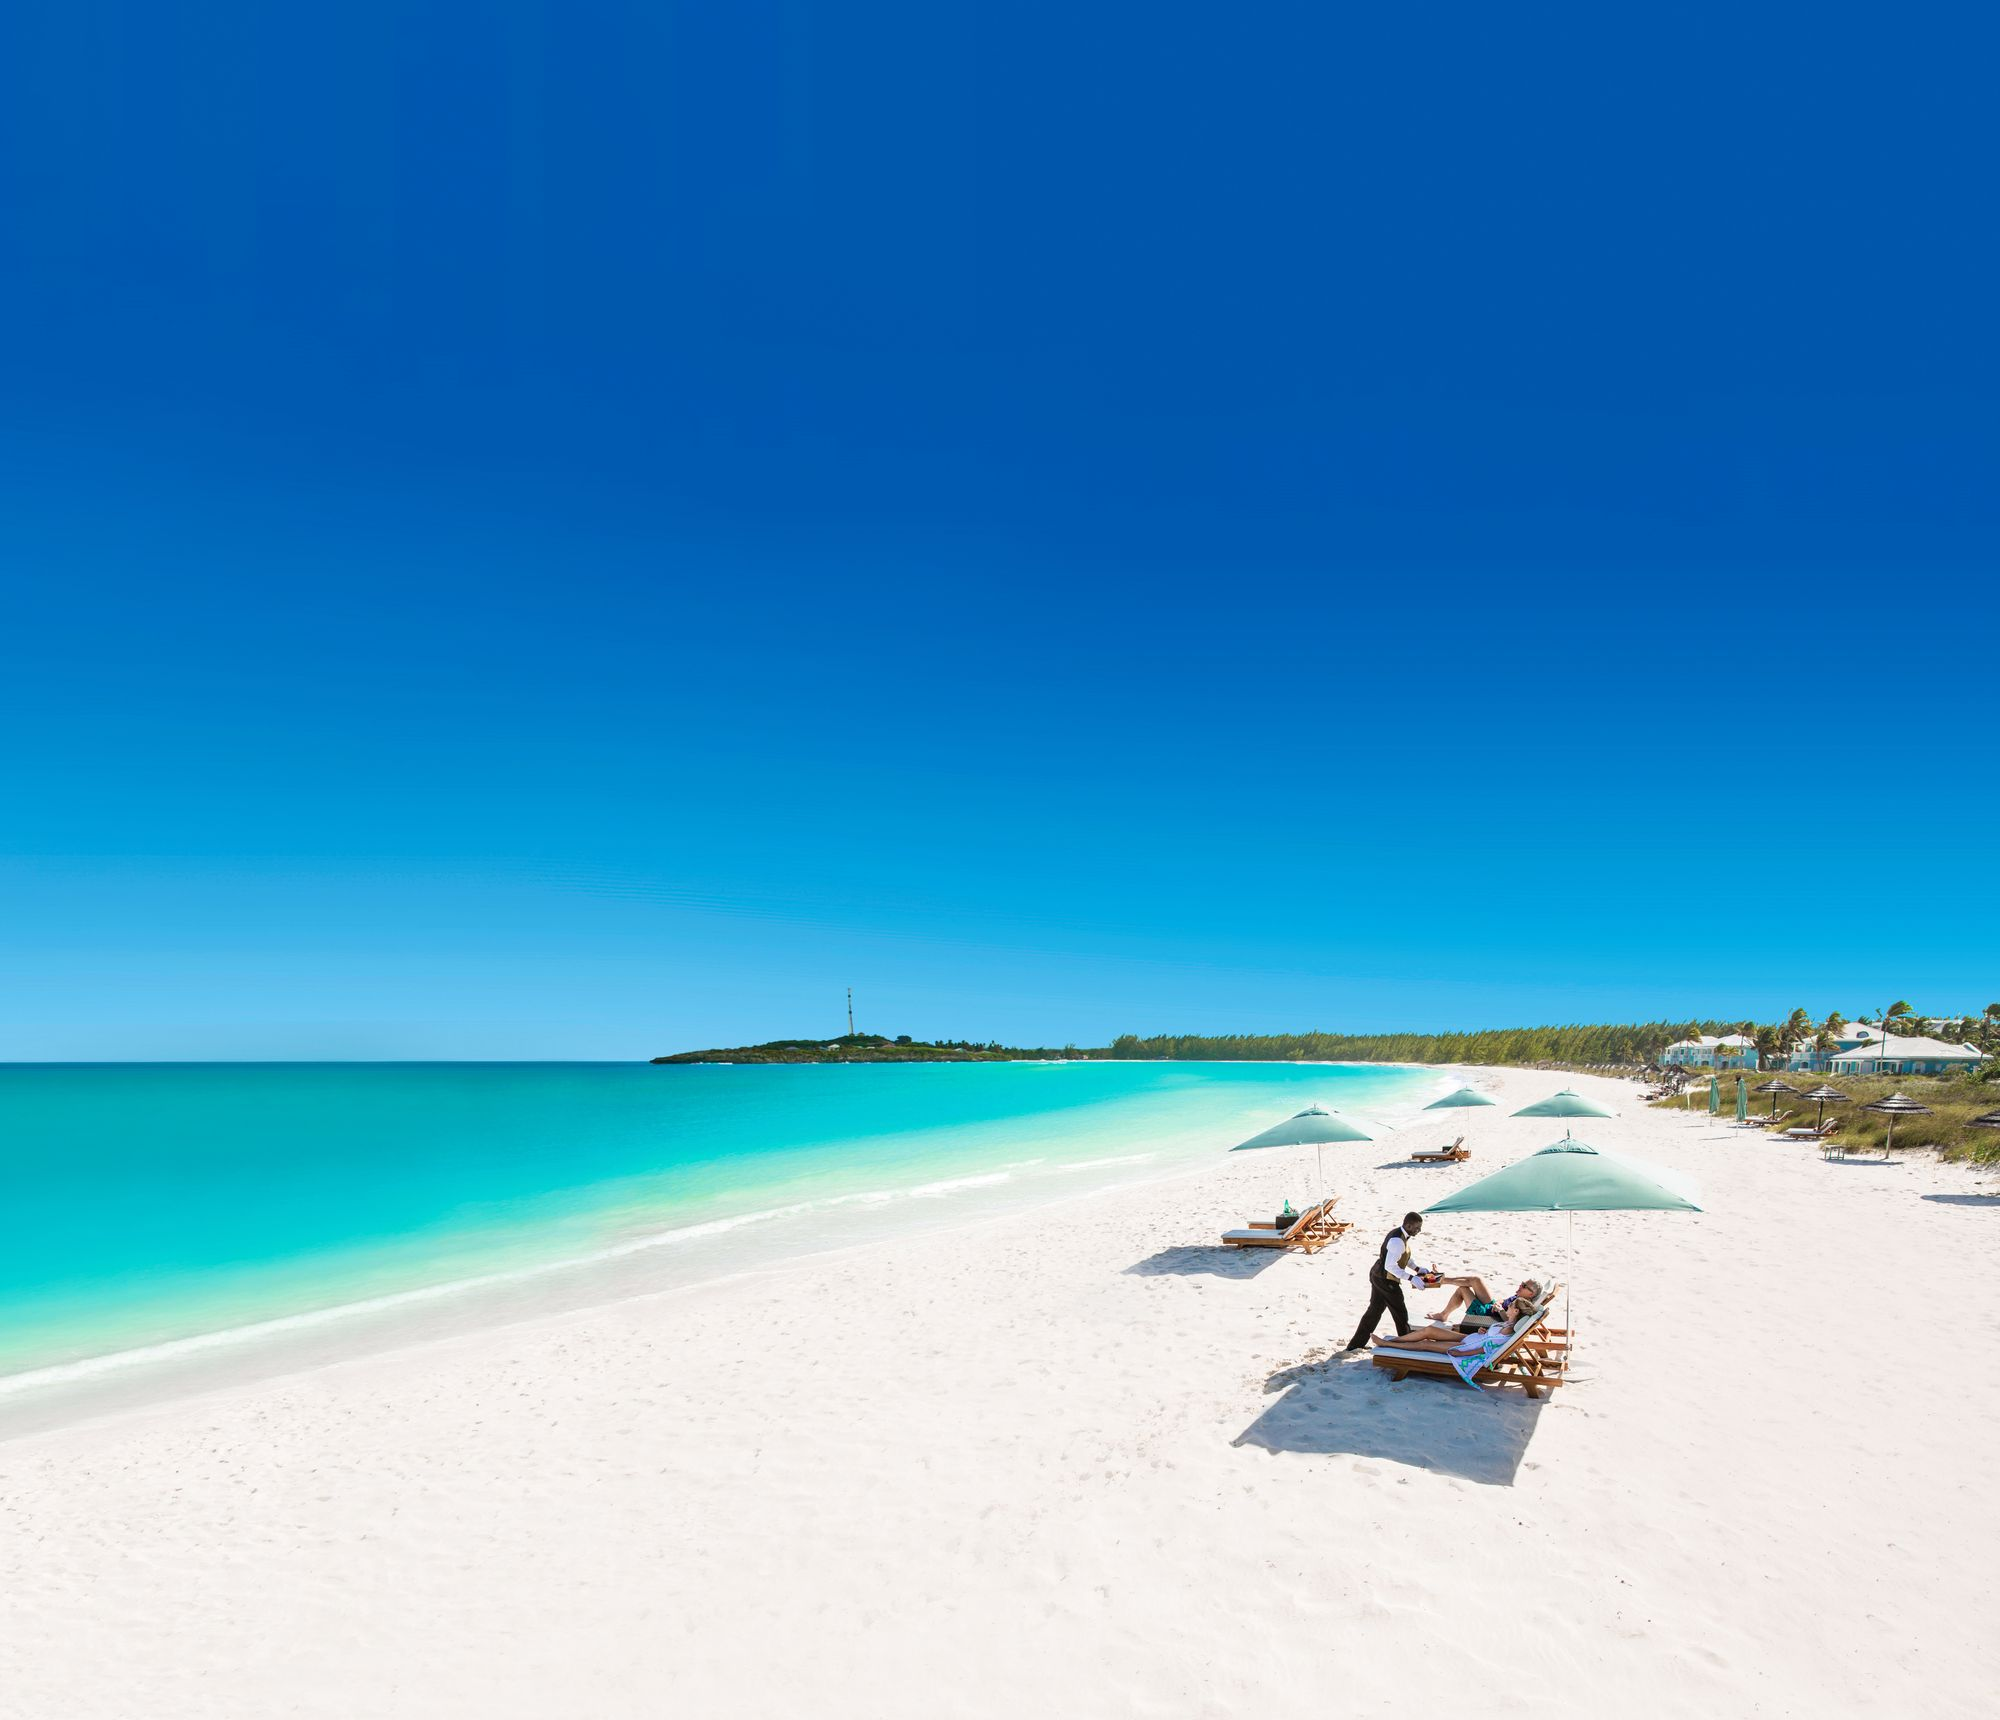 Escape to Sandals for Some Winter Sun